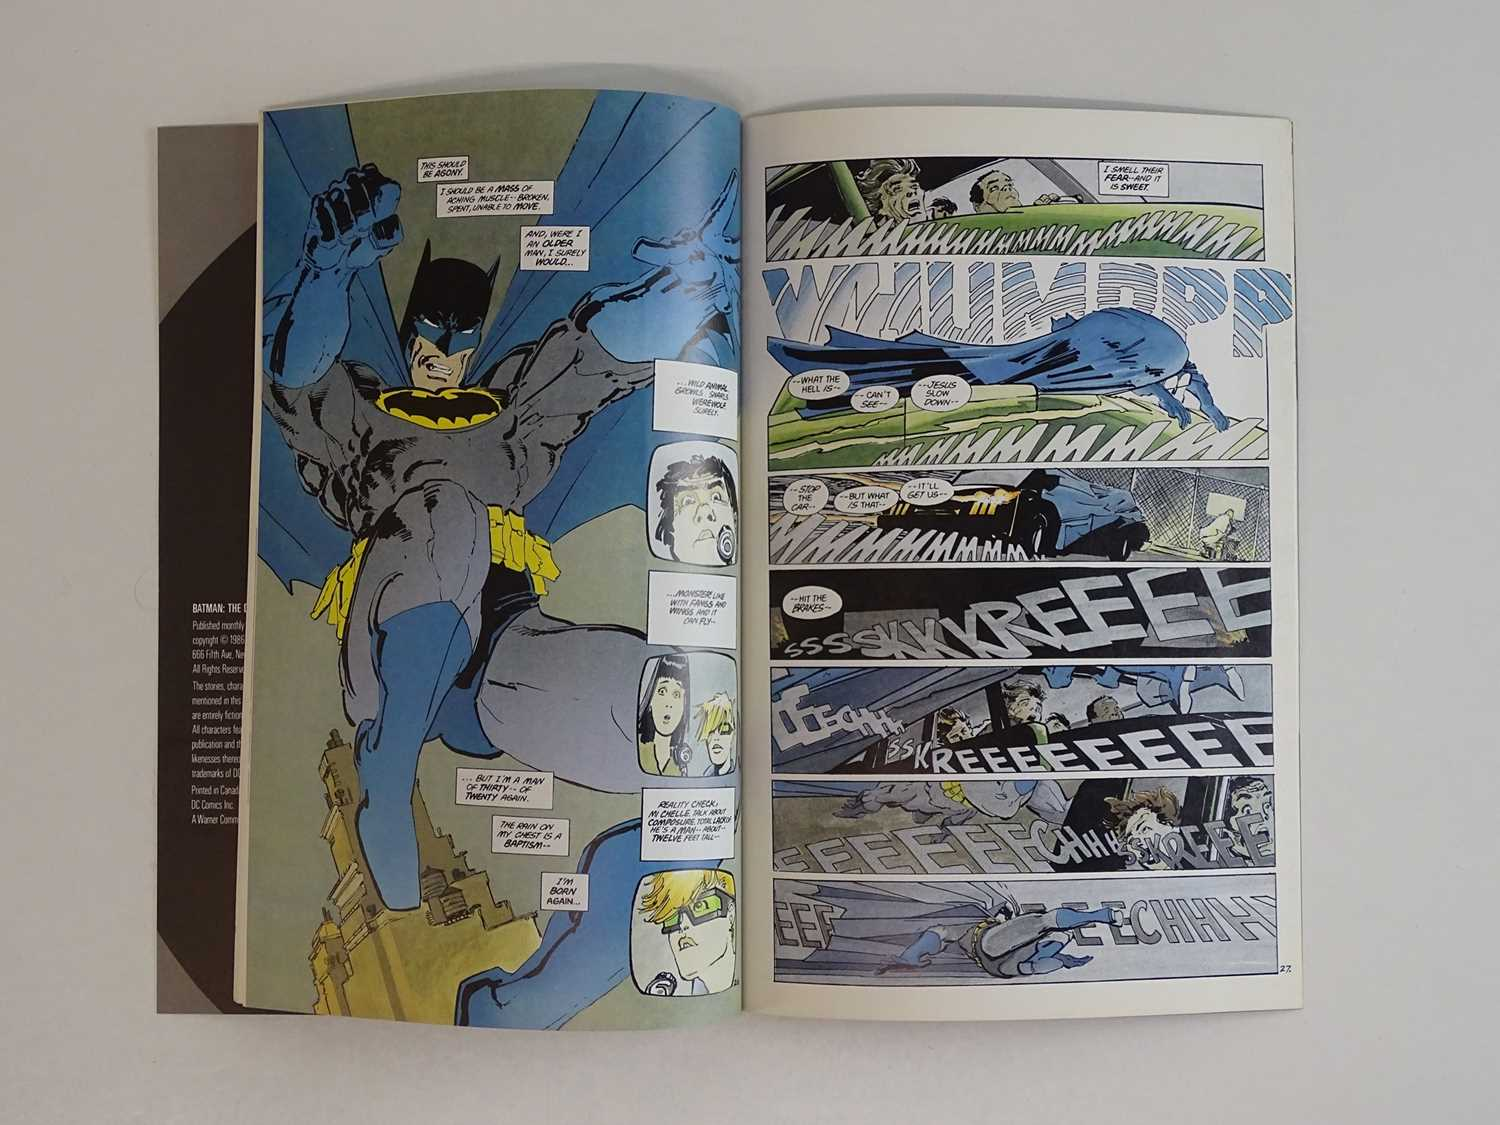 BATMAN: DARK KNIGHT RETURNS #1 - (1986 - DC) - First Printing - First appearance of Carrie Kelly + - Image 4 of 6